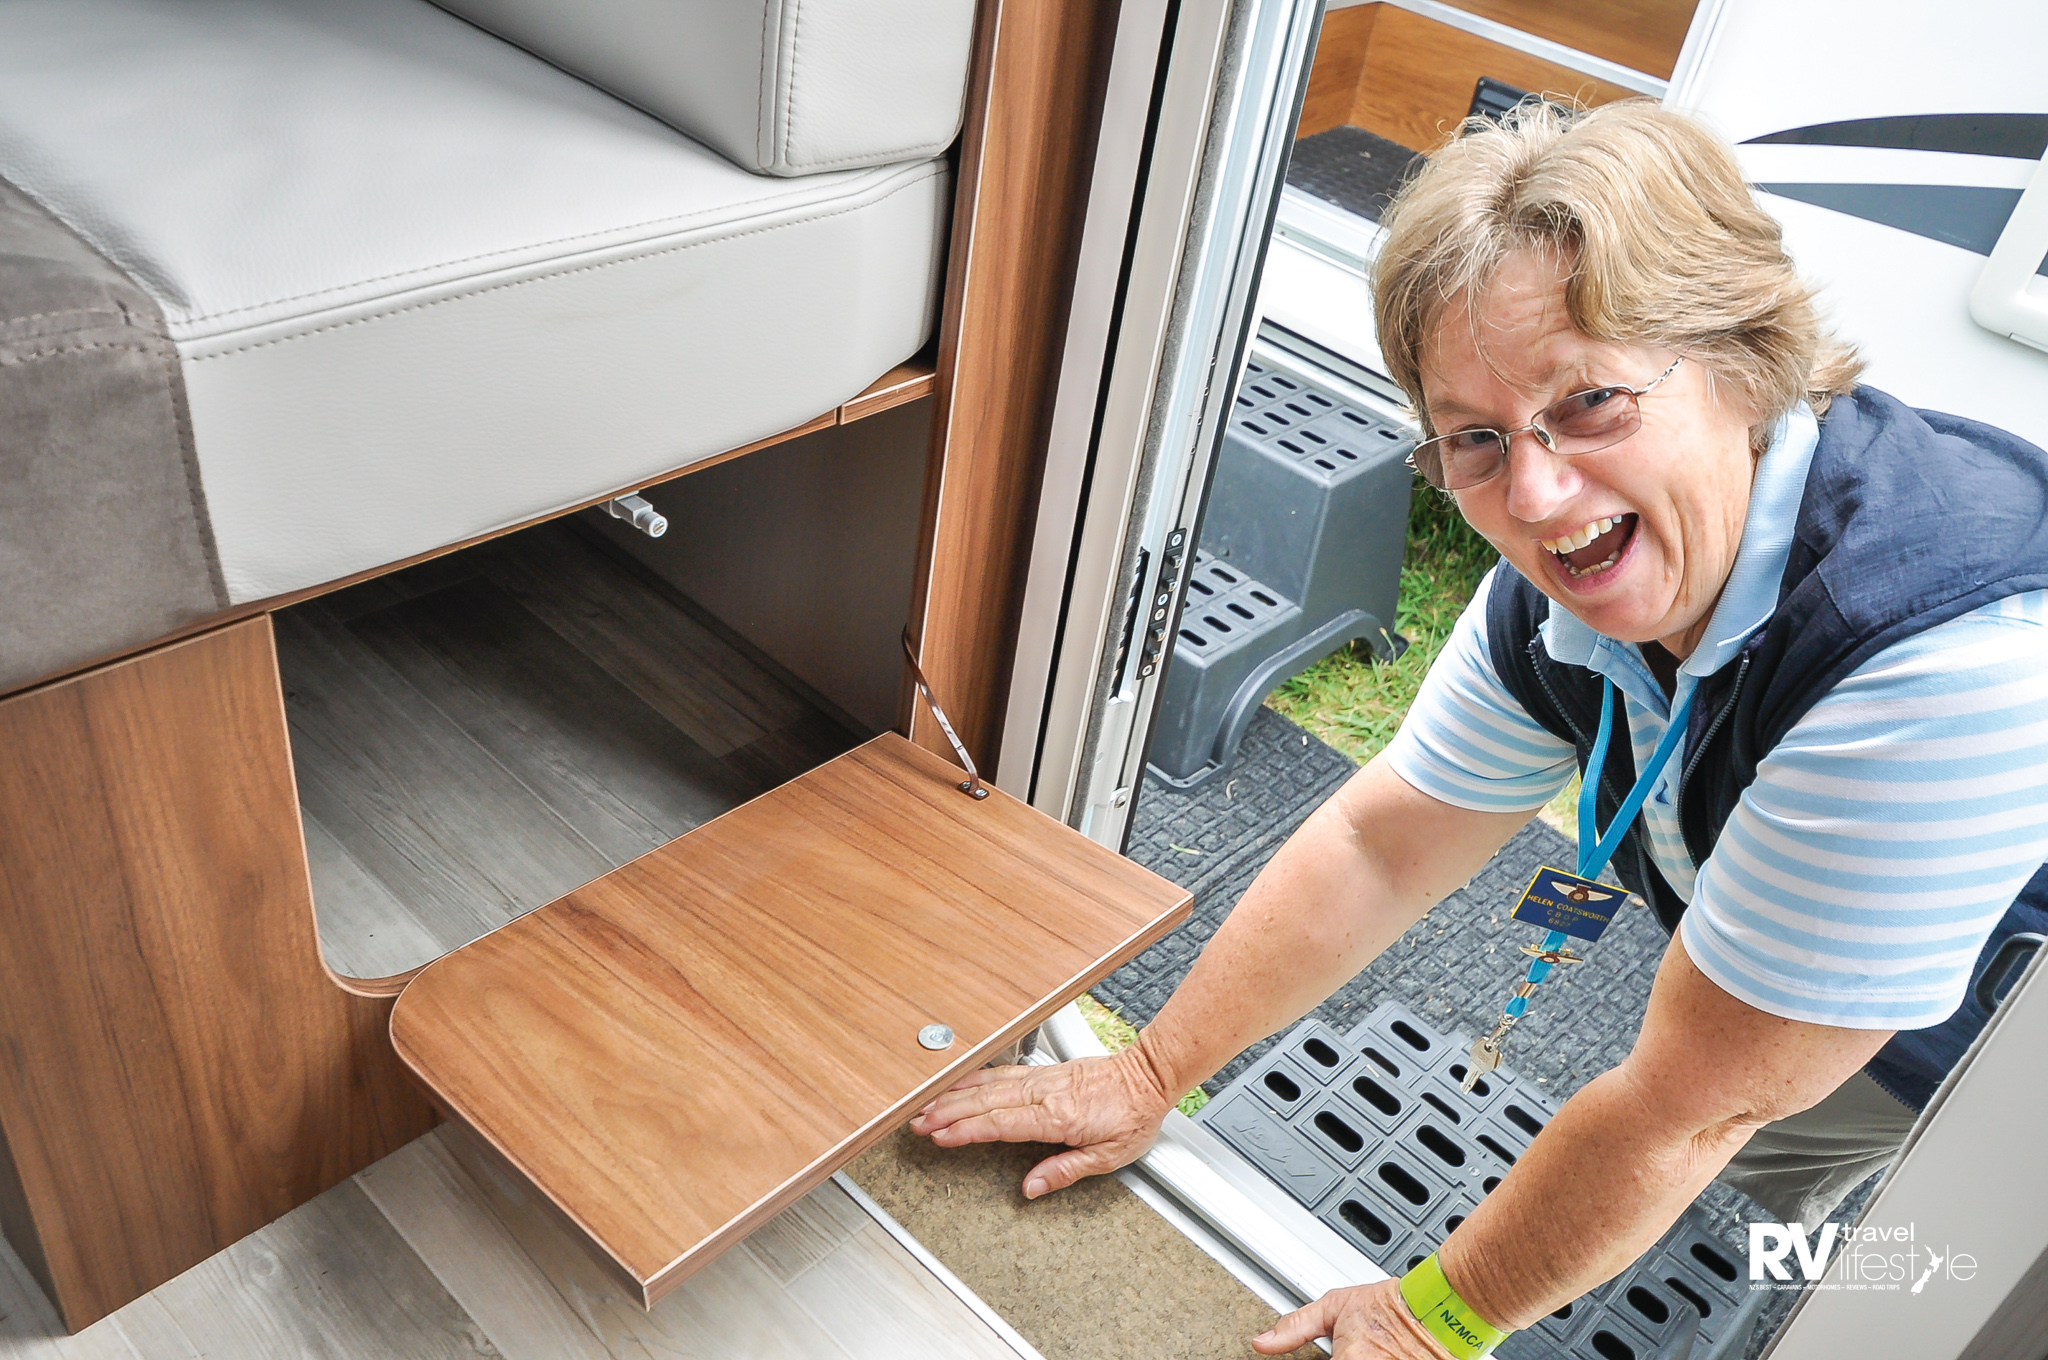 Helen Coatsworth from CBOP is a long-time member of the NZMCA – her number is 6827 and they're into the 60,000 now. Helen spotted the under-seat storage; great for shoes or things you want on your way out or in the door